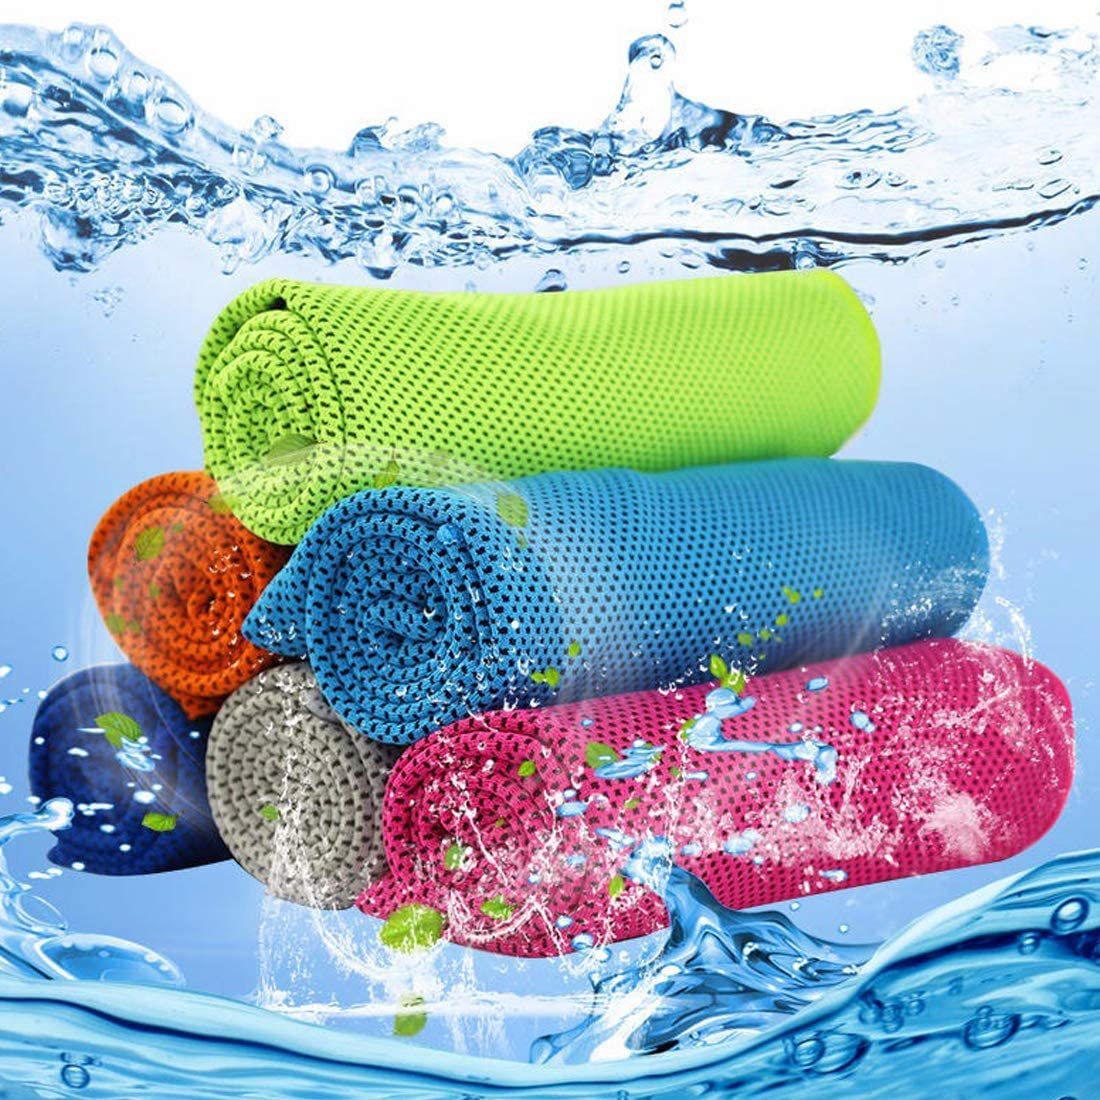 Cooling Towel Ice Towel,Microfiber Towel,Soft Breathable Chilly Towel for Yoga,Sport,Gym,Workout,Camping,Fitness,Running,Workout/&More Activities 40x 12